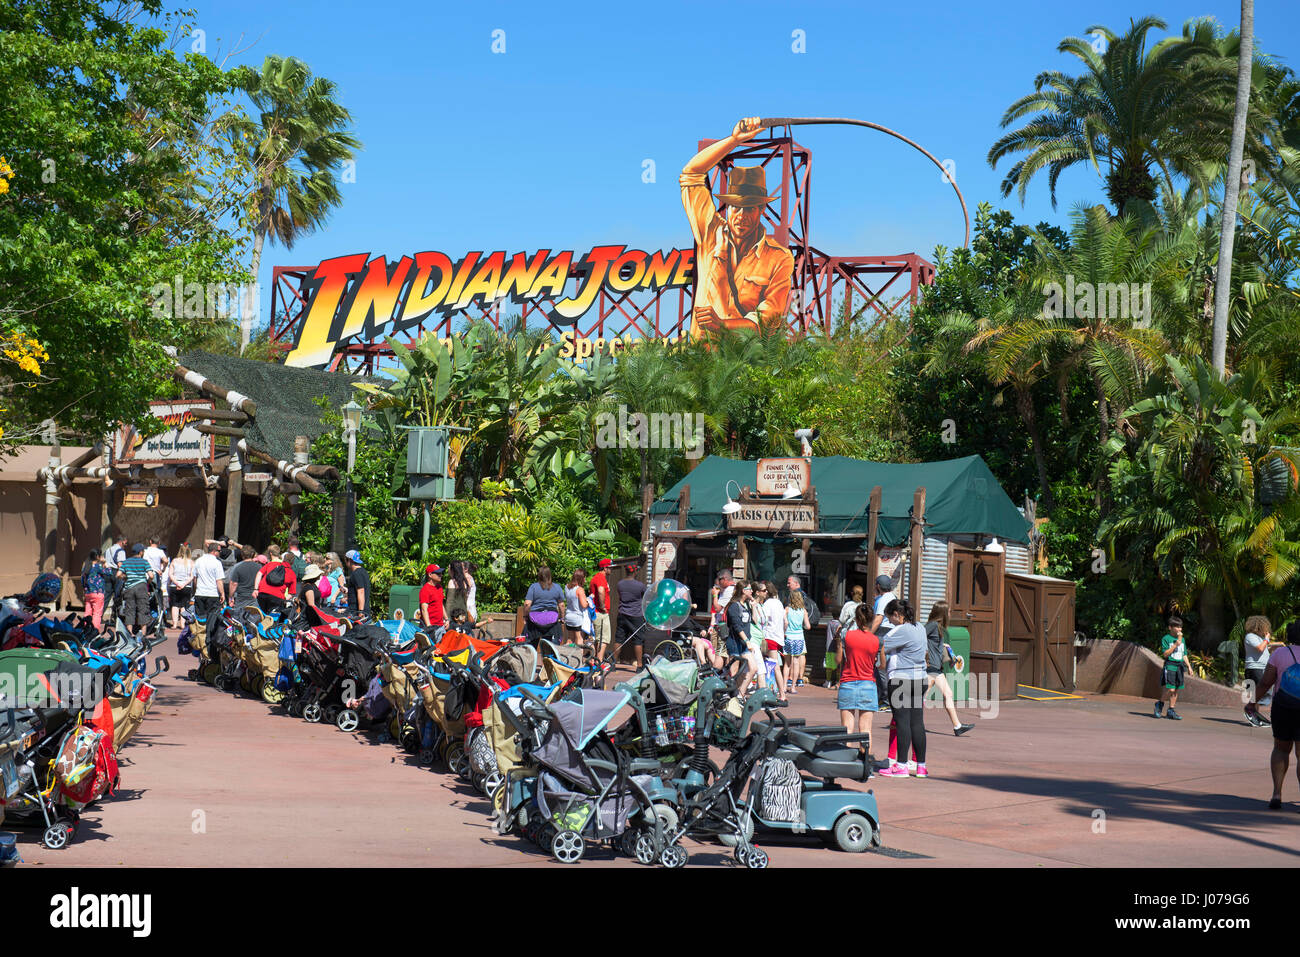 Indiana Jones, Epic Stunt Spectacular, Disney World, Orlando Florida - Stock Image